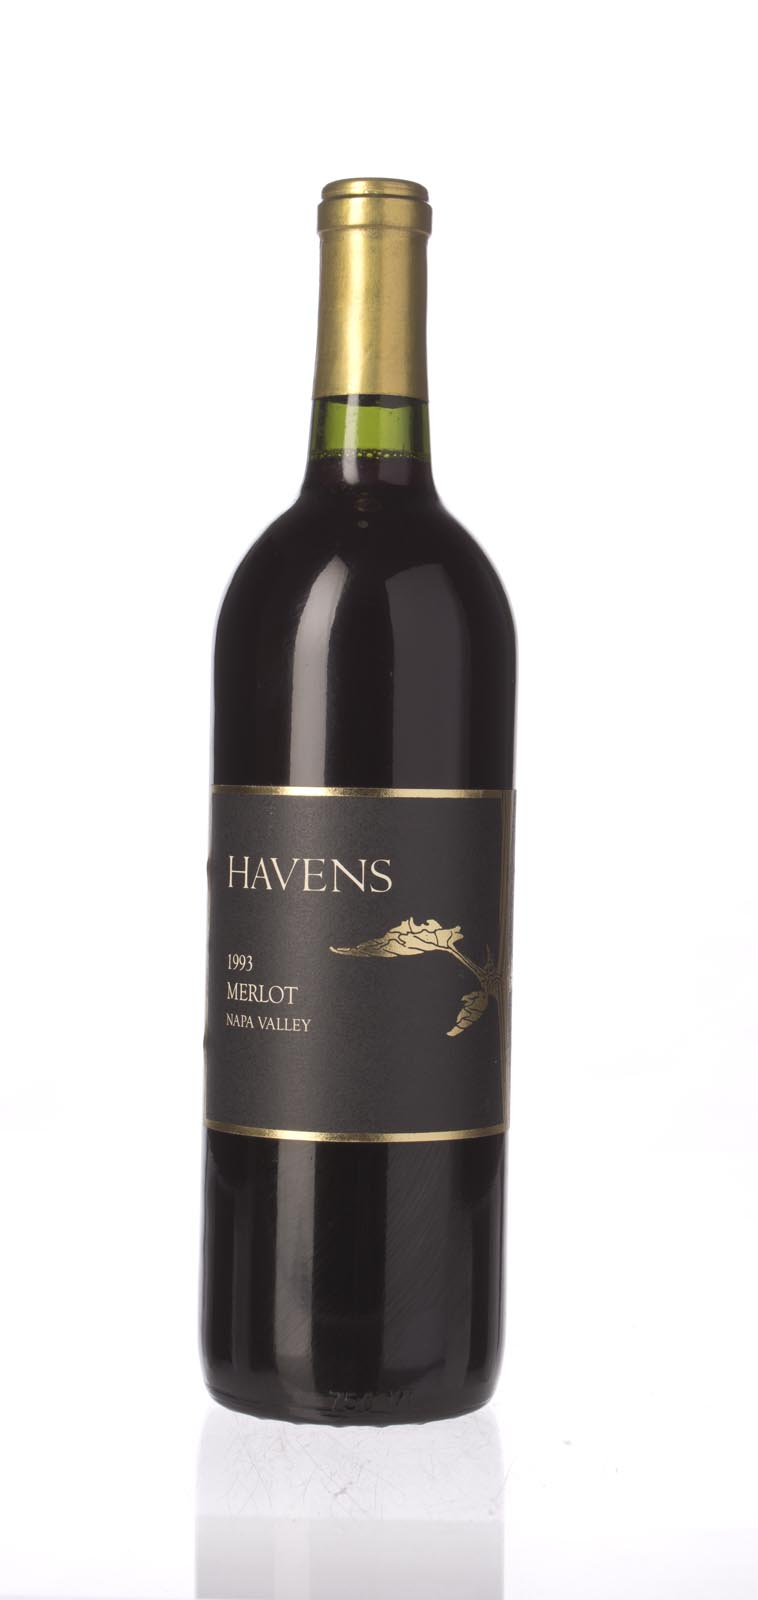 Havens Wine Cellar Merlot Napa Valley 1993, 750mL () from The BPW - Merchants of rare and fine wines.